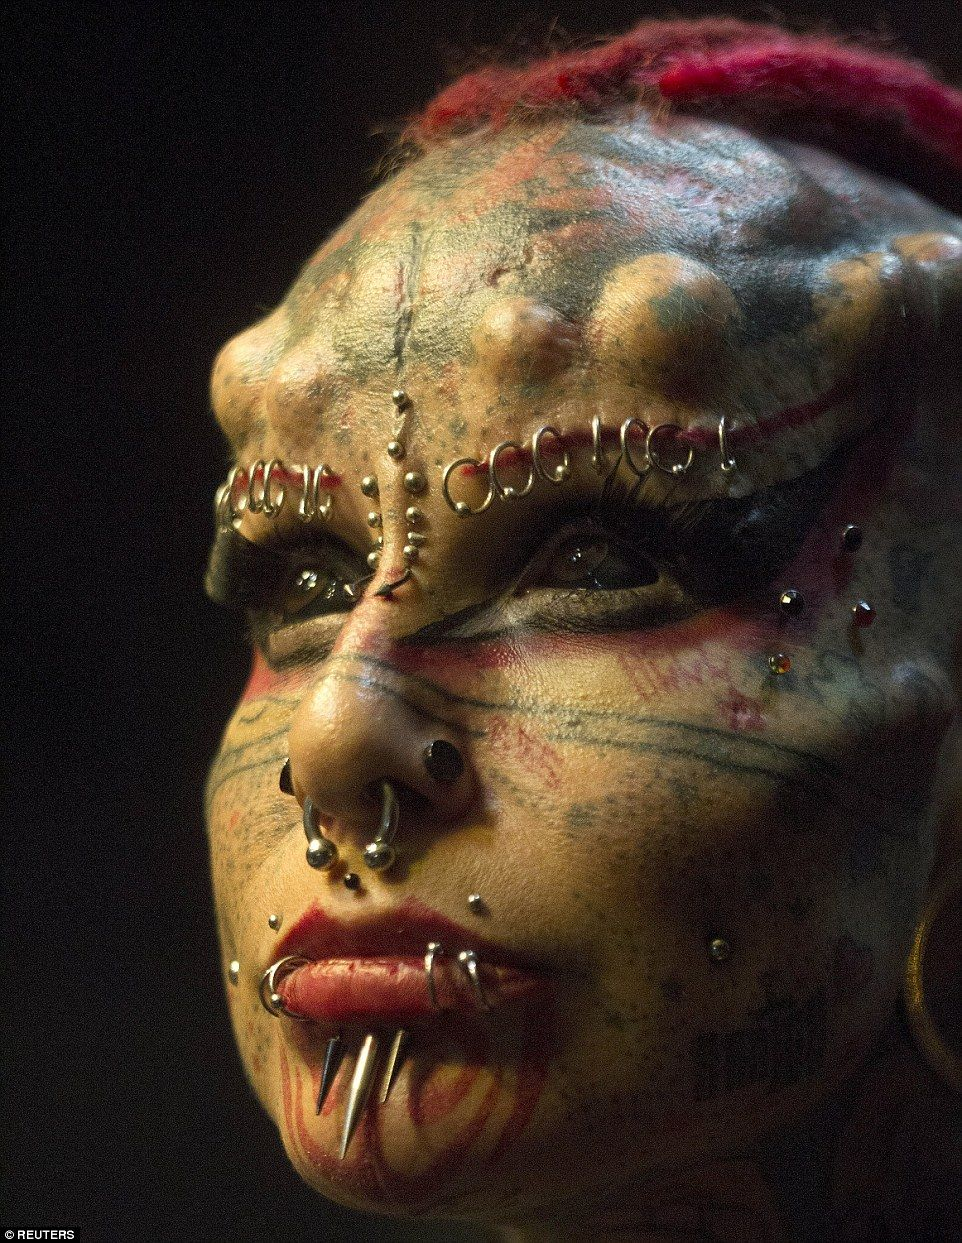 Big change:Maria Cristerna, dubbed The Vampire Lady, was born in a deeply religious family in Guadalajara, Mexico